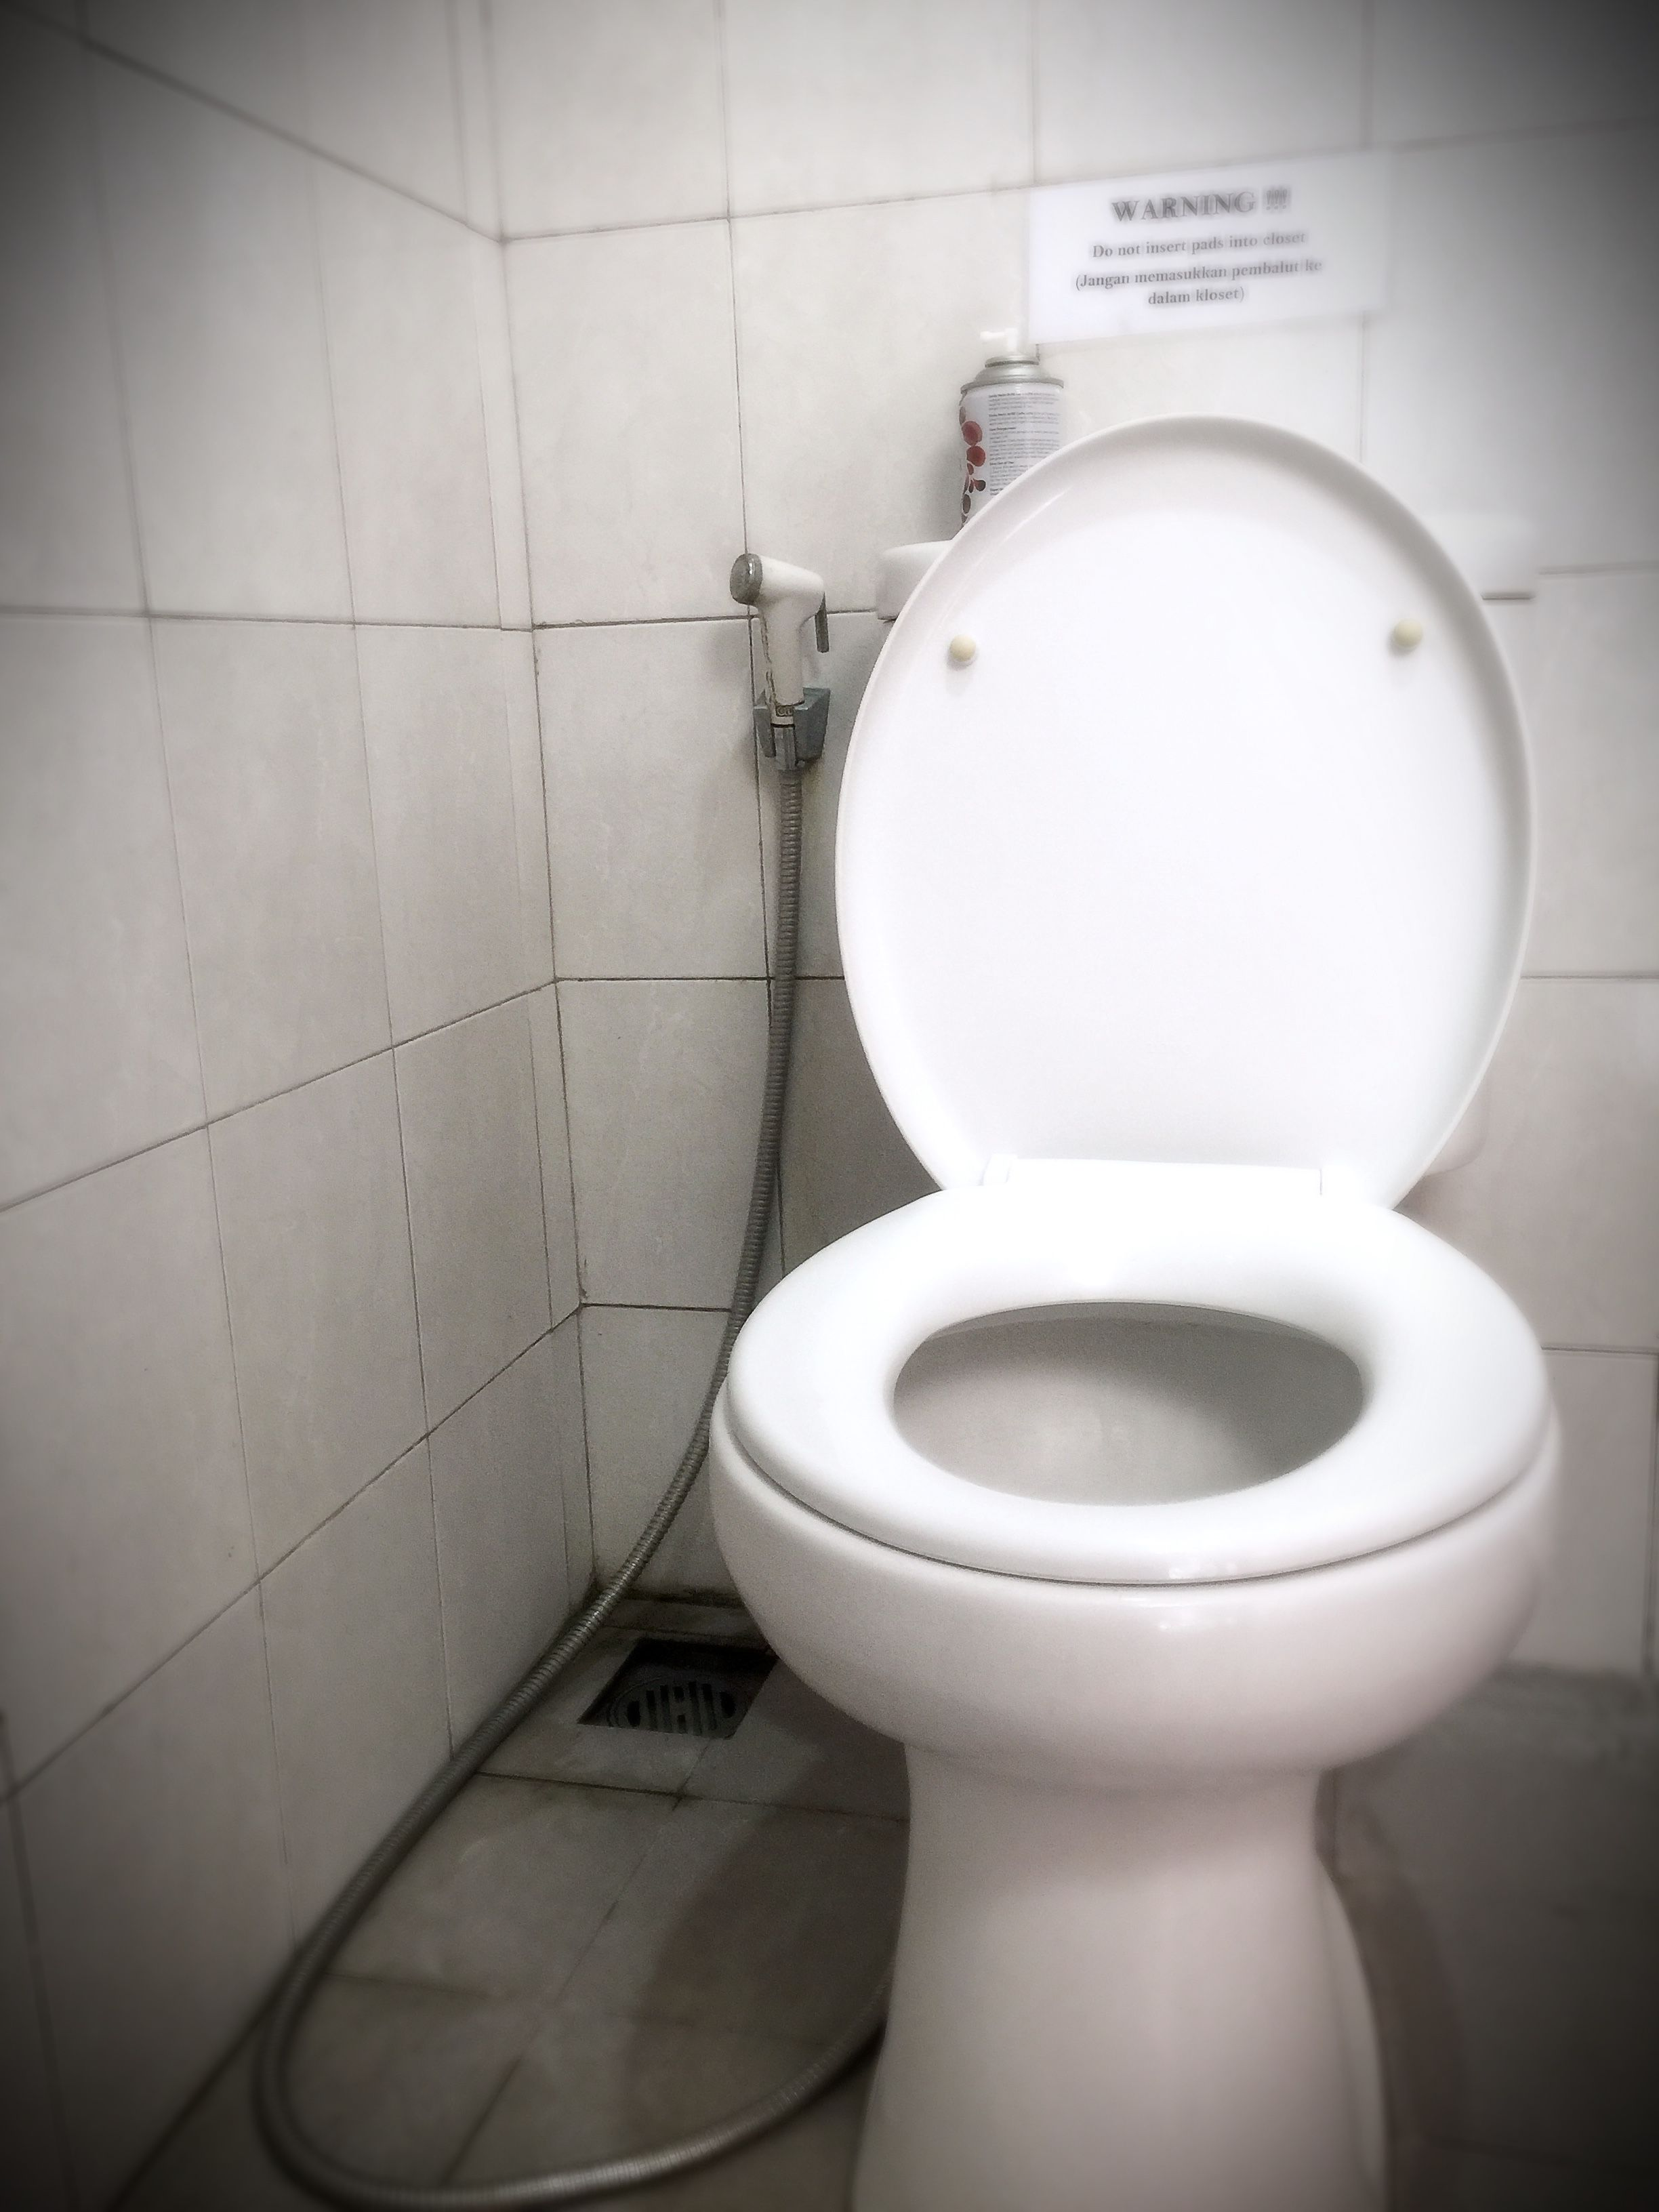 Today S Top Discussion Why Do Toilets In Indonesia Have Hoses Beside Them Let S Just Say To Always Male Sure You Shake Hands And Eat Your Food With Your Right